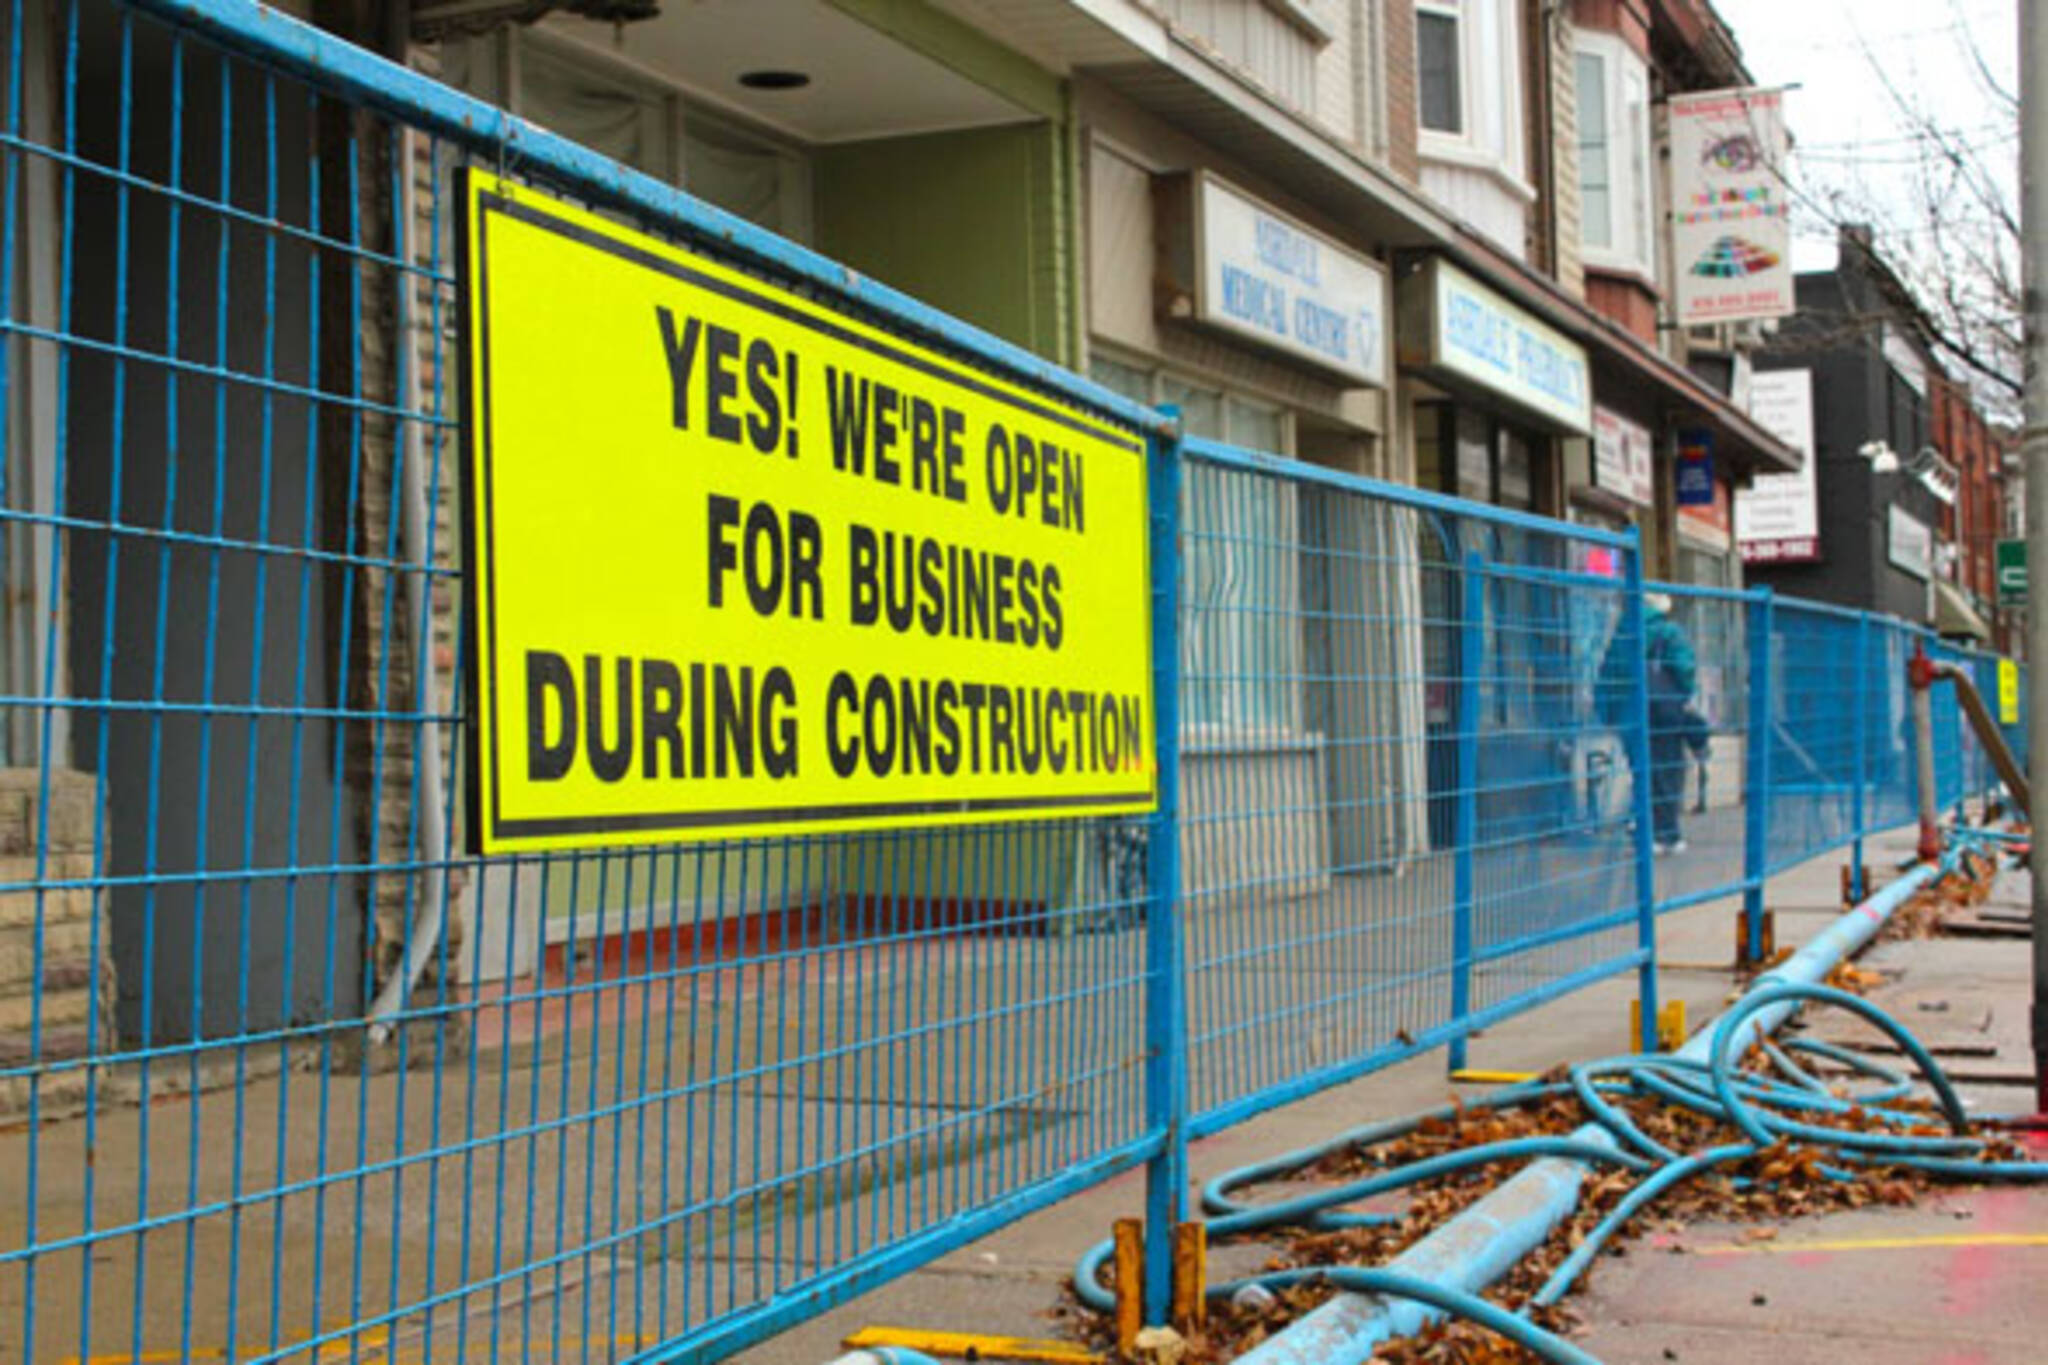 Queen Coxwell construction